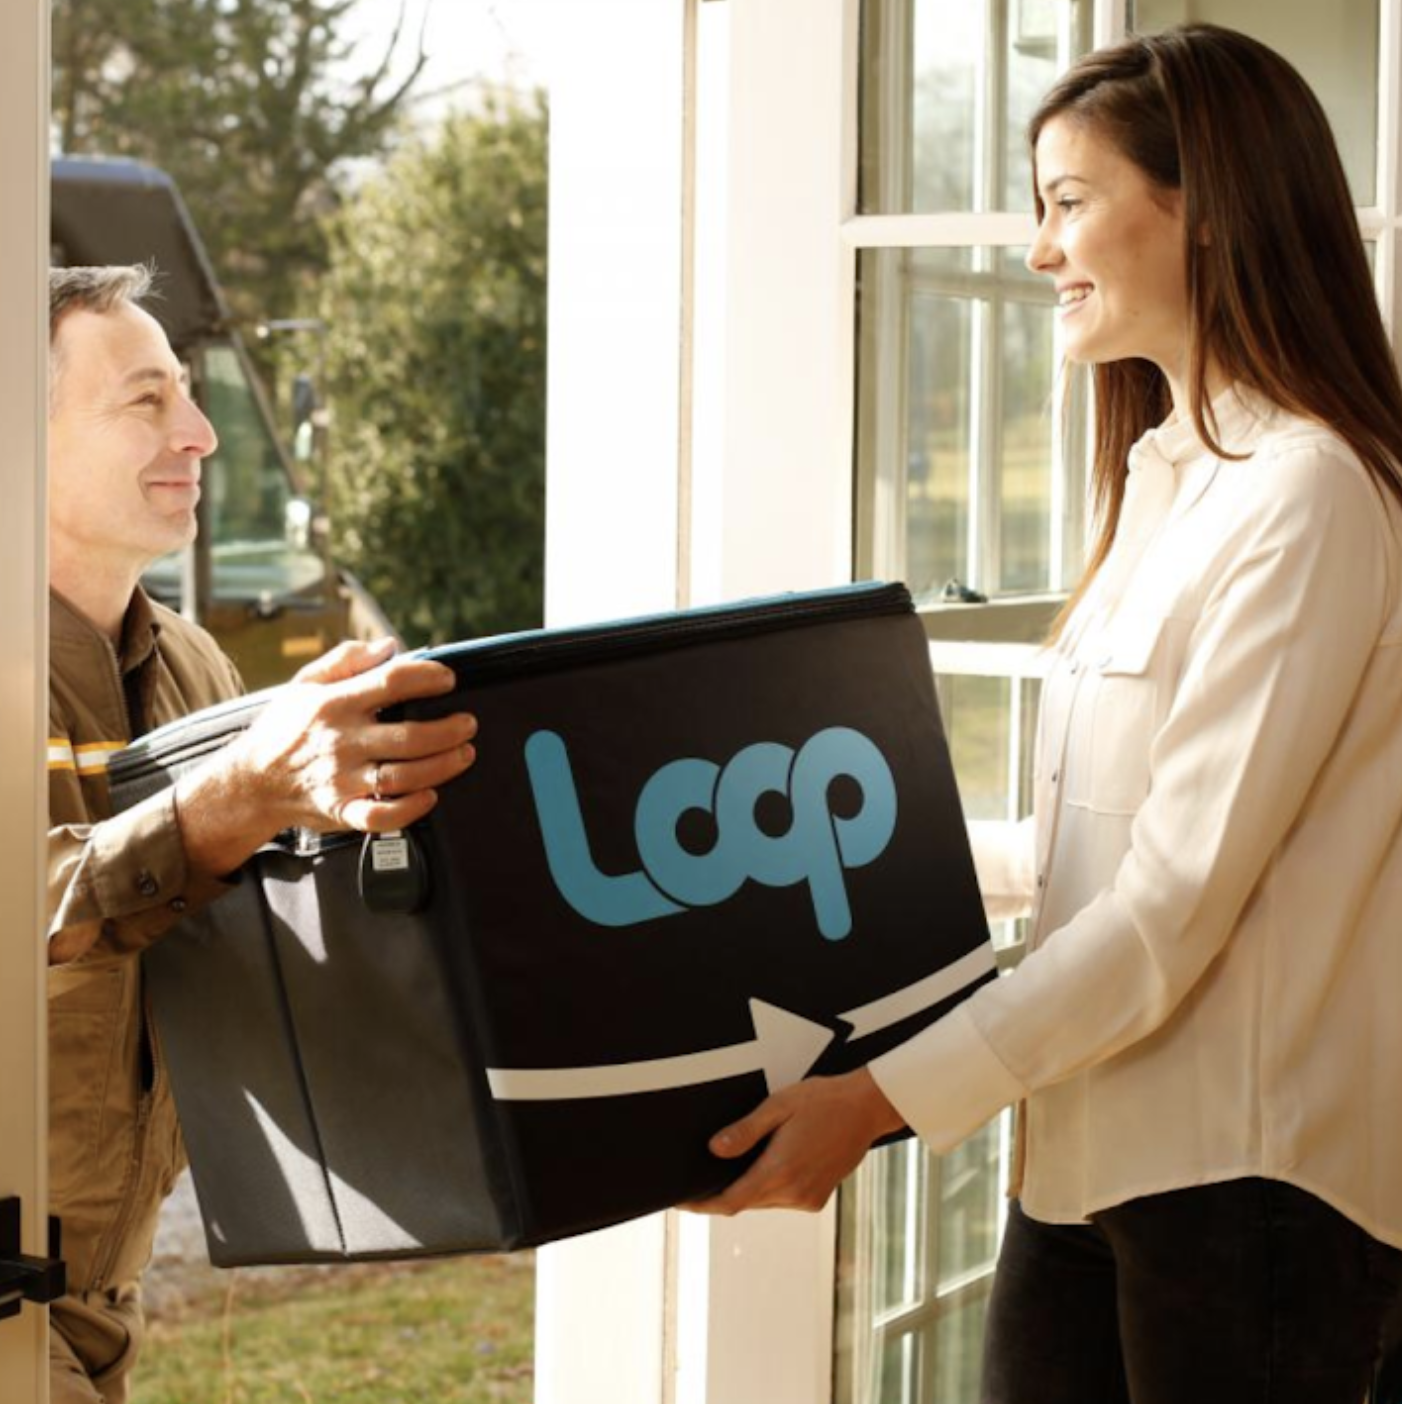 loop-store-terracycle